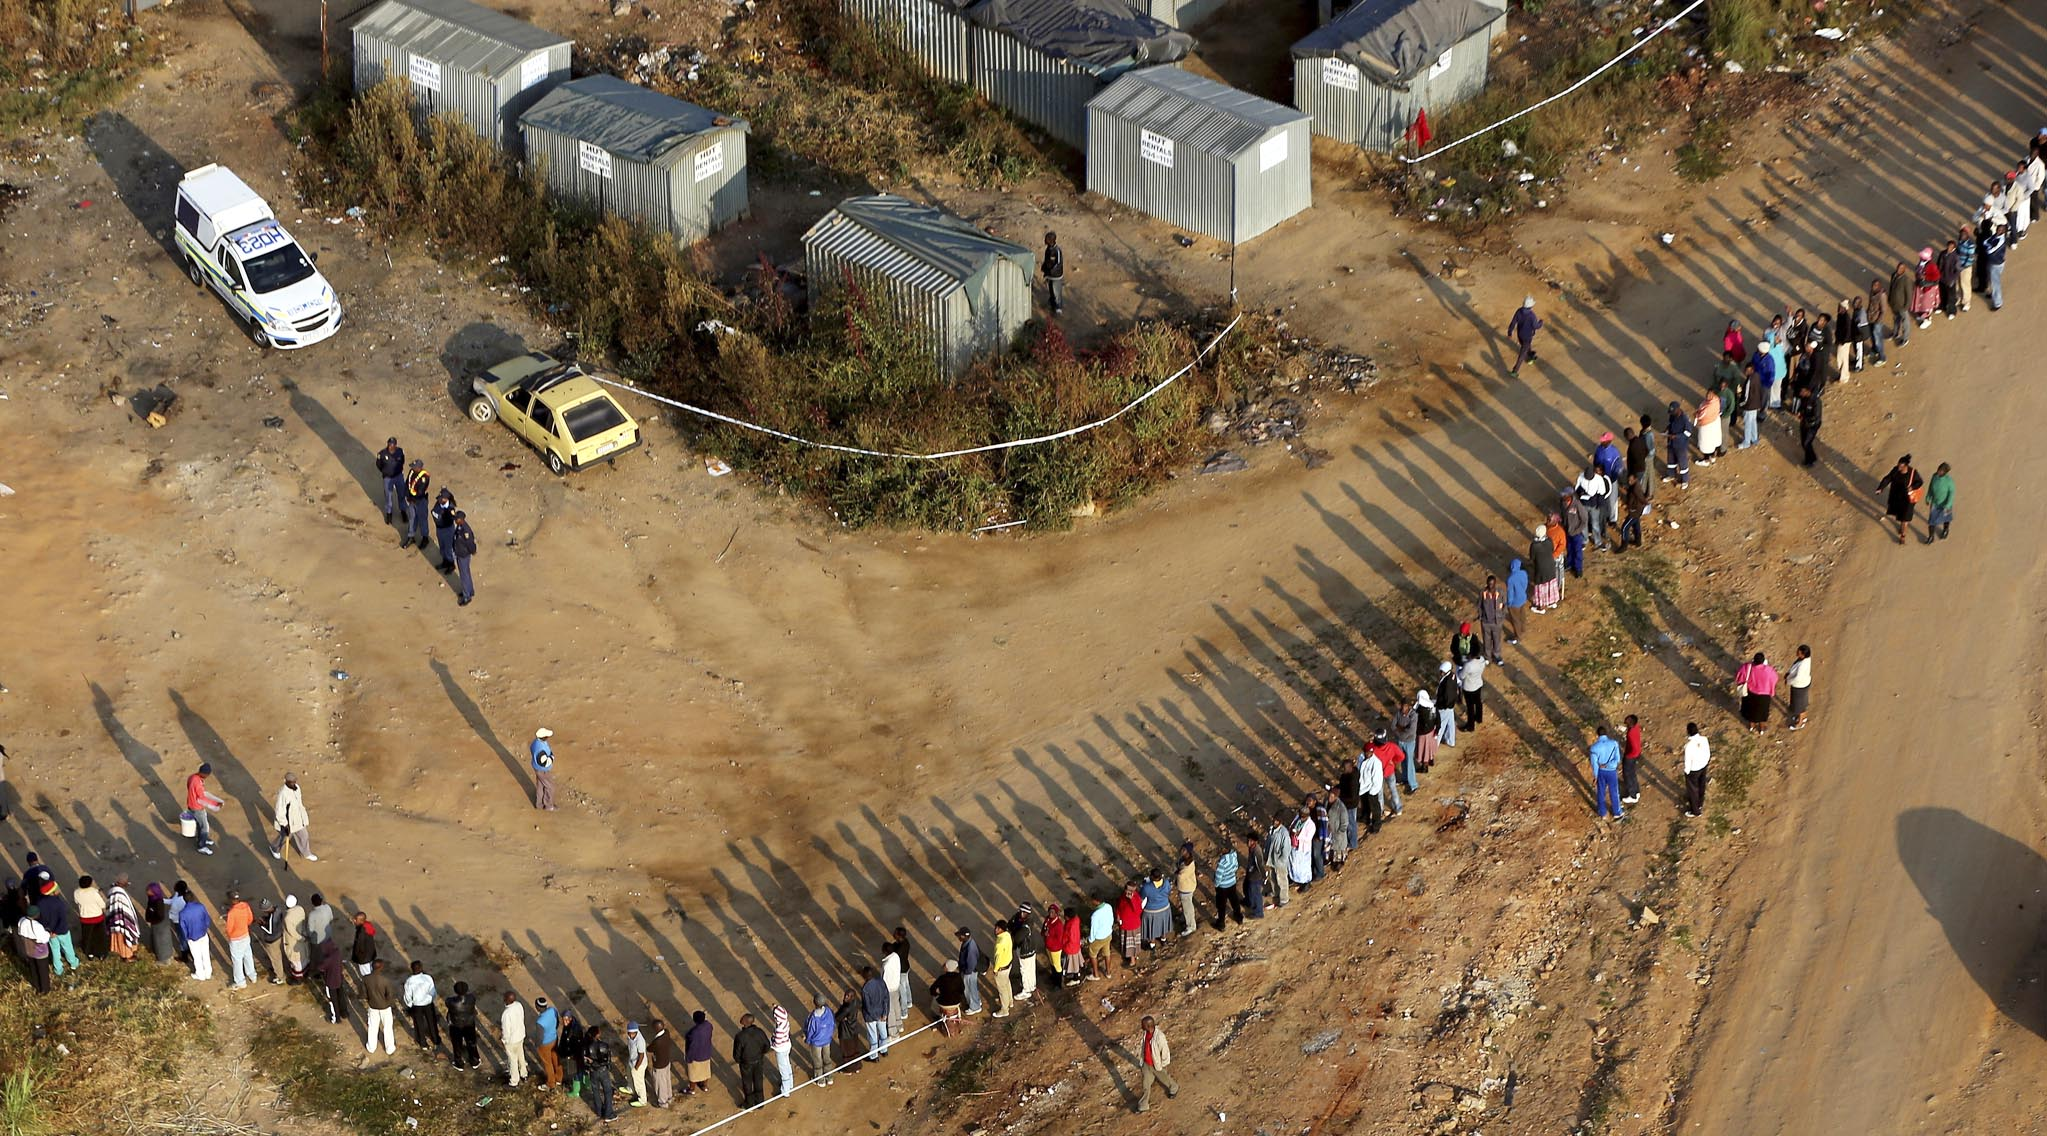 South Africans queue to vote at a polling station in Zandspruit, west of Johannesburg, South Africa, Wednesday, May 7, 2014. South Africans voted Wednesday in elections that are expected to see the ruling African National Congress return to power despite a vigorous challenge from opposition parties seeking to capitalize on discontent with corruption and economic inequality. (AP Photo/Themba Hadebe)